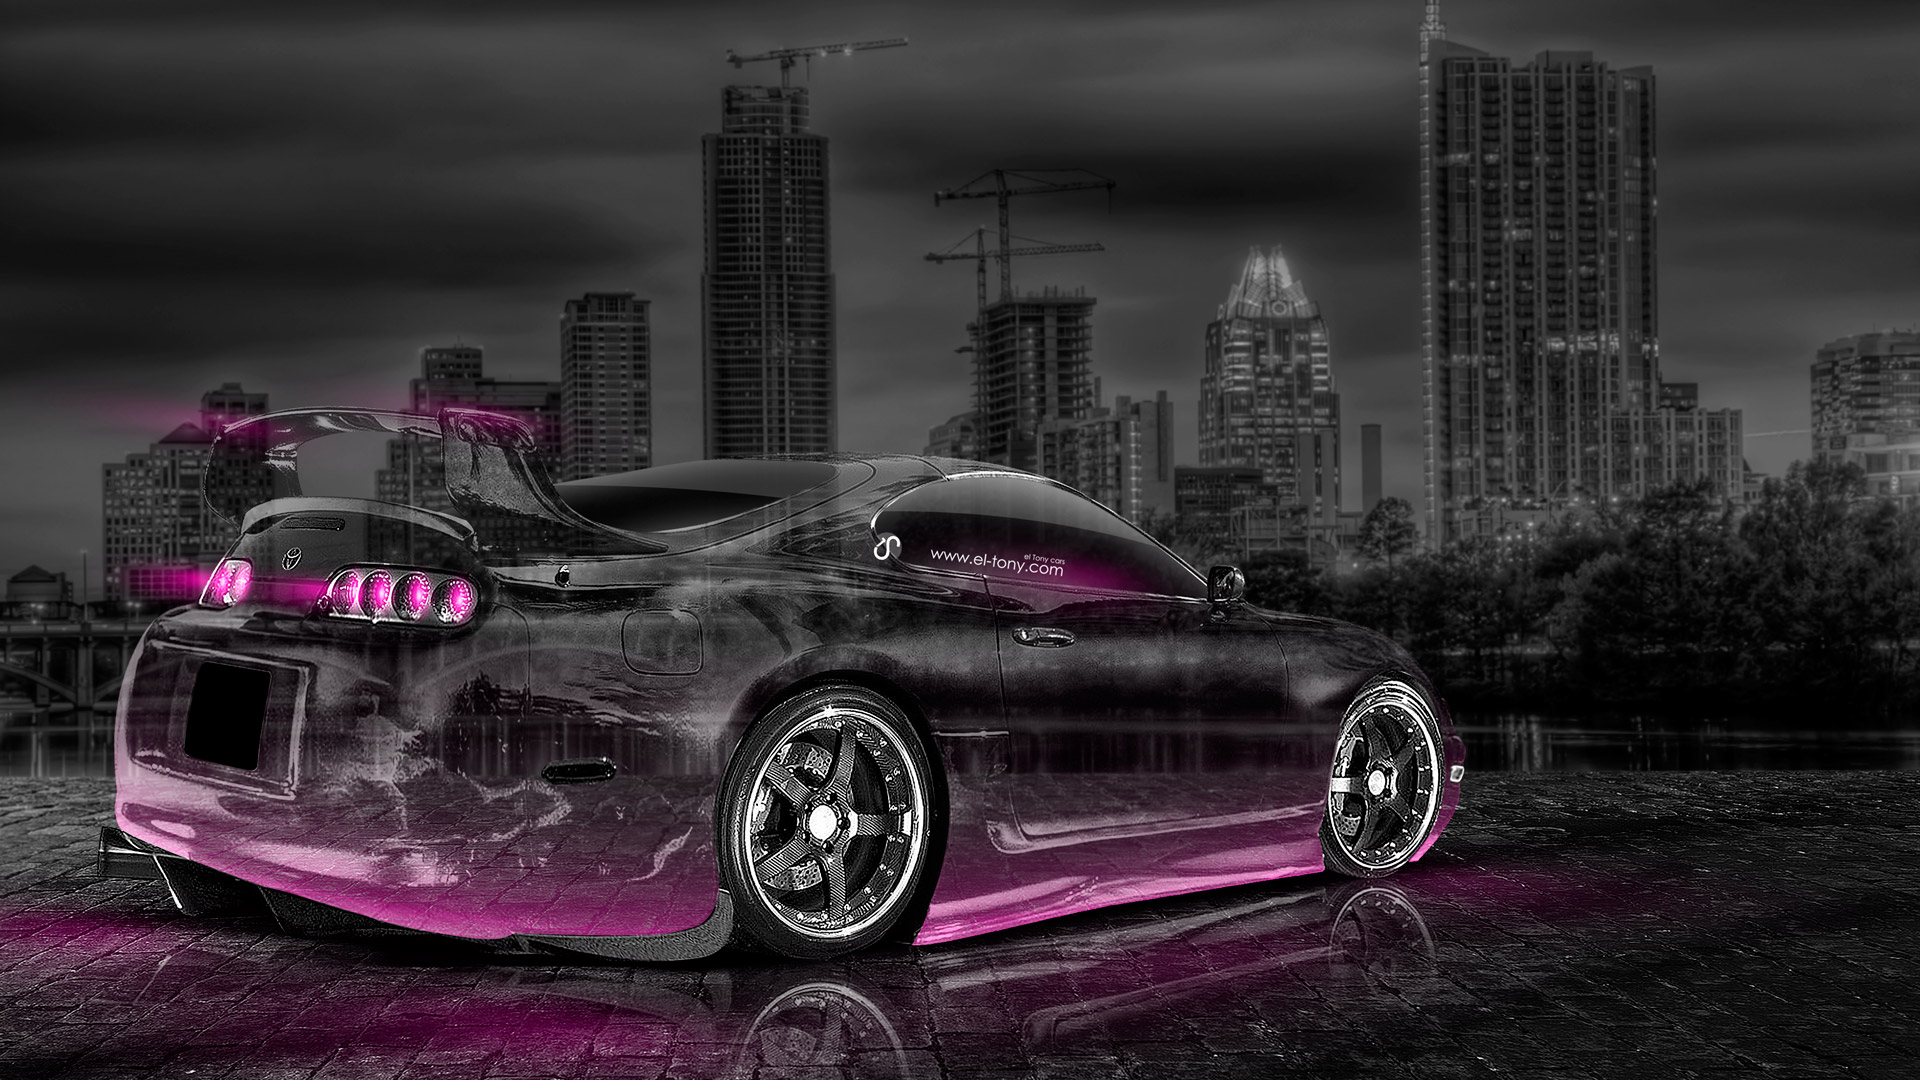 Amazing Toyota Supra JDM Crystal City Car 2014 Pink